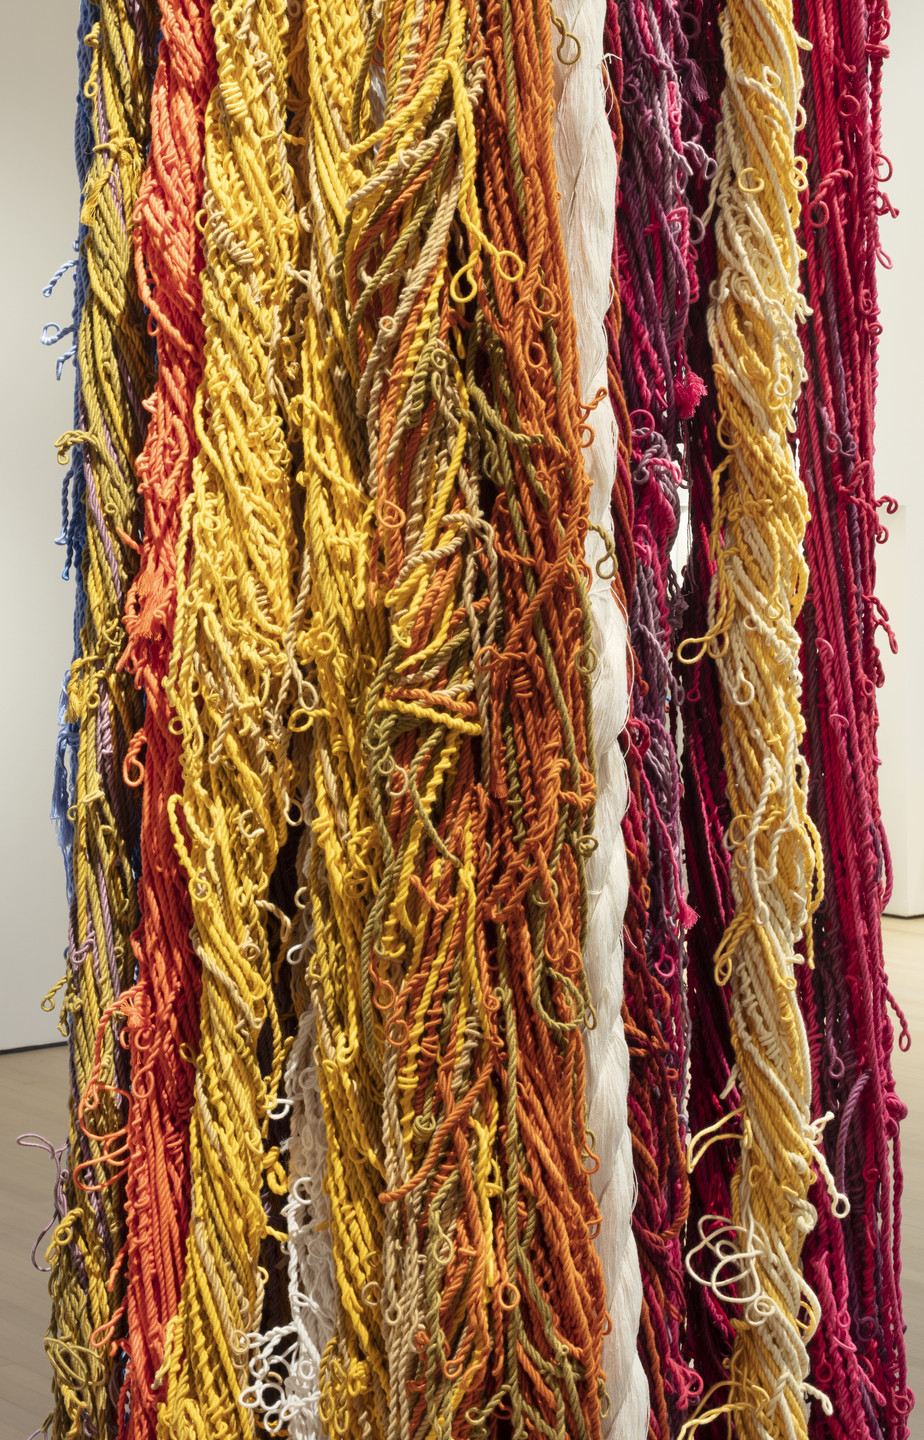 Sheila Hicks. Pillar of Inquiry/Supple Column. 2013–2014